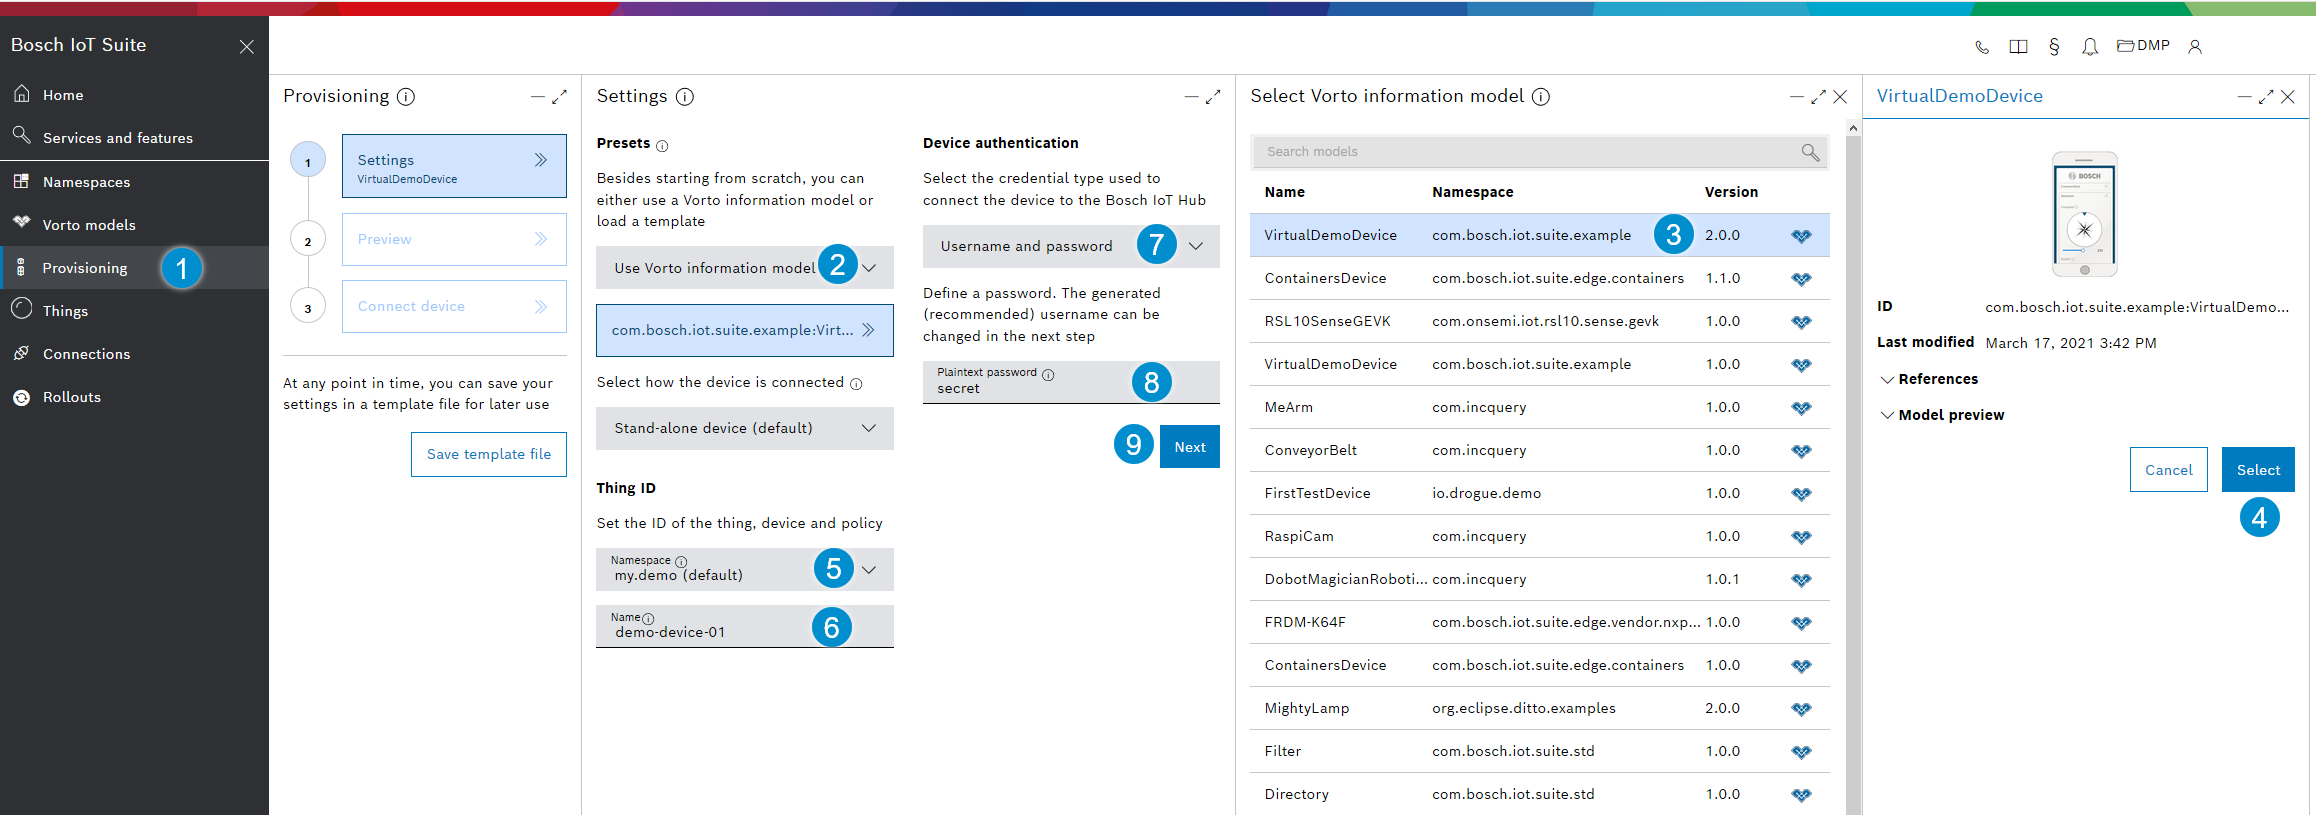 images/confluence/download/attachments/1634787919/demo-provisioning.png